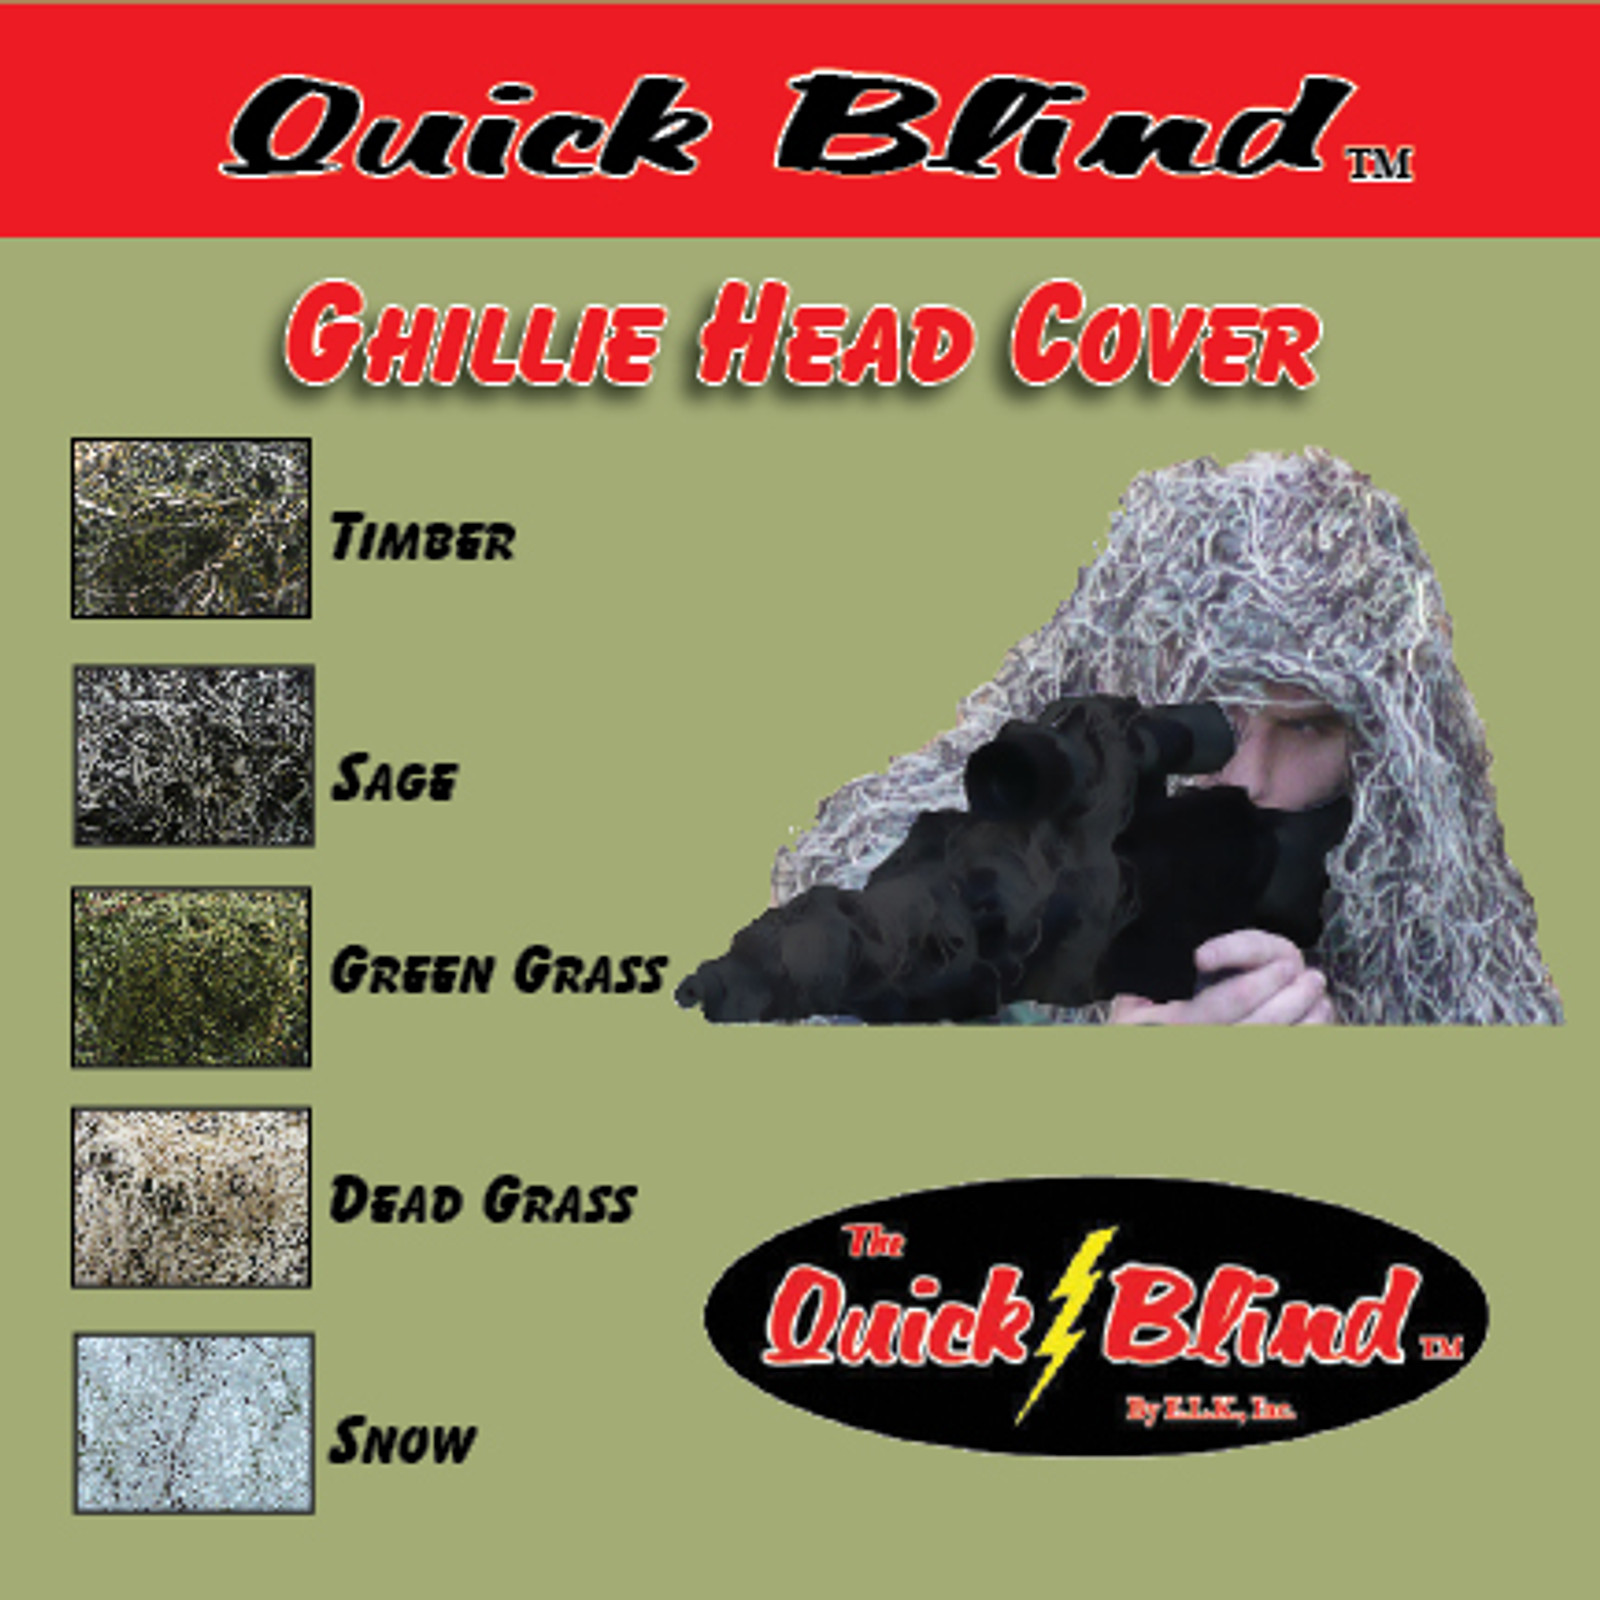 GHILLIE HEAD COVER